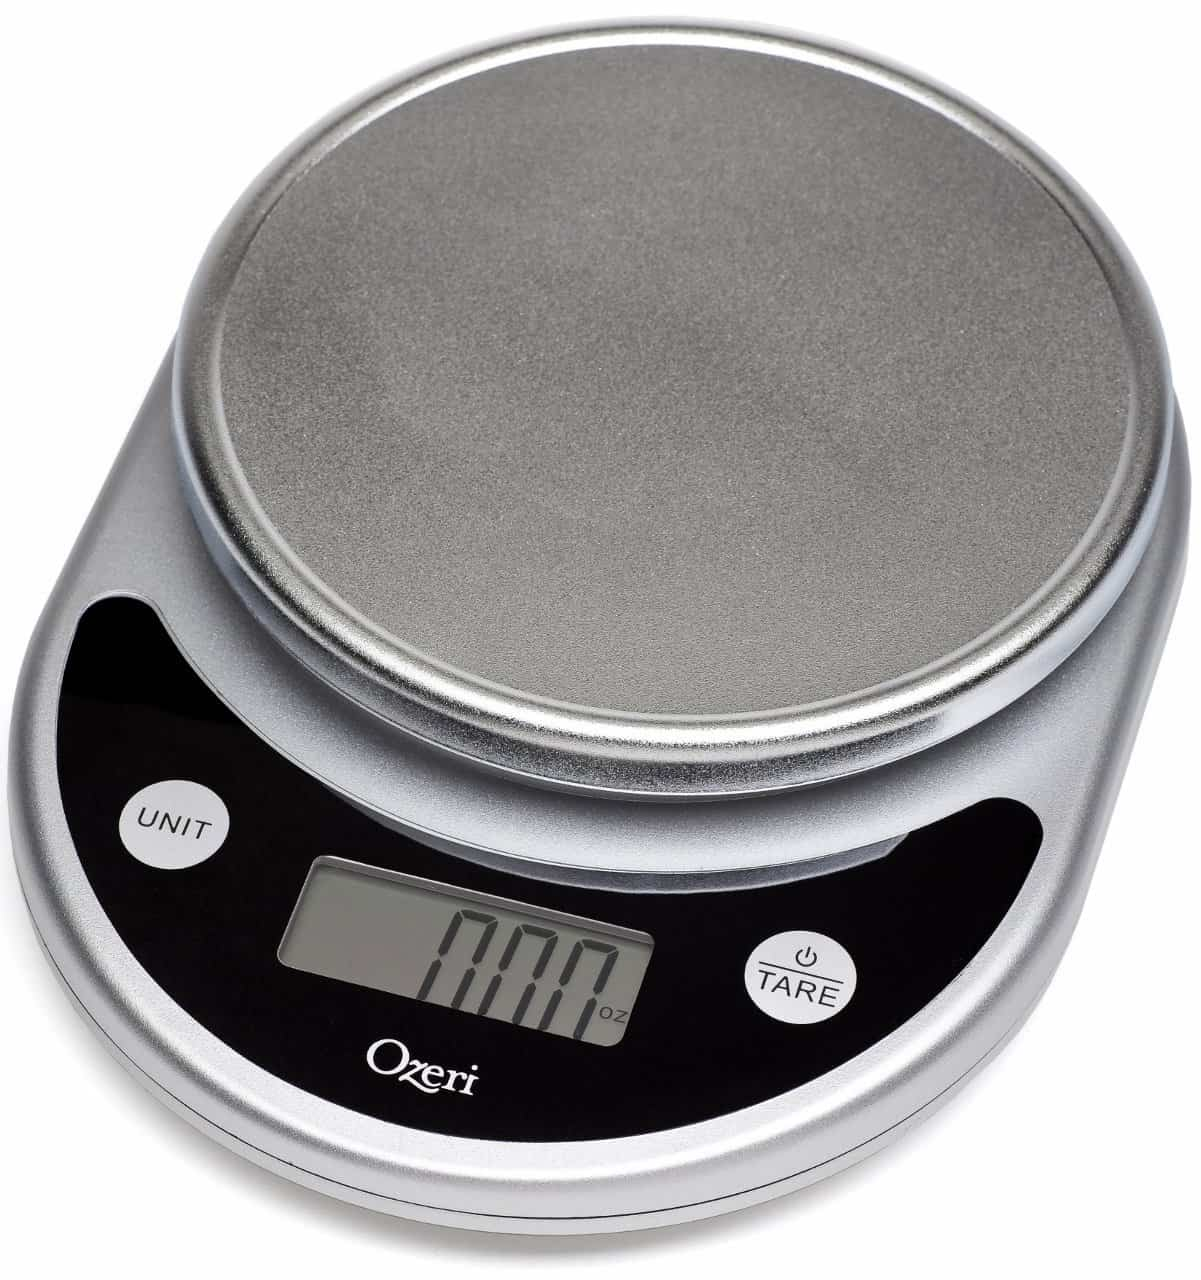 Food Scale | 2015 Holiday Gift Guide for Foodies @ FiveHeartHome.com